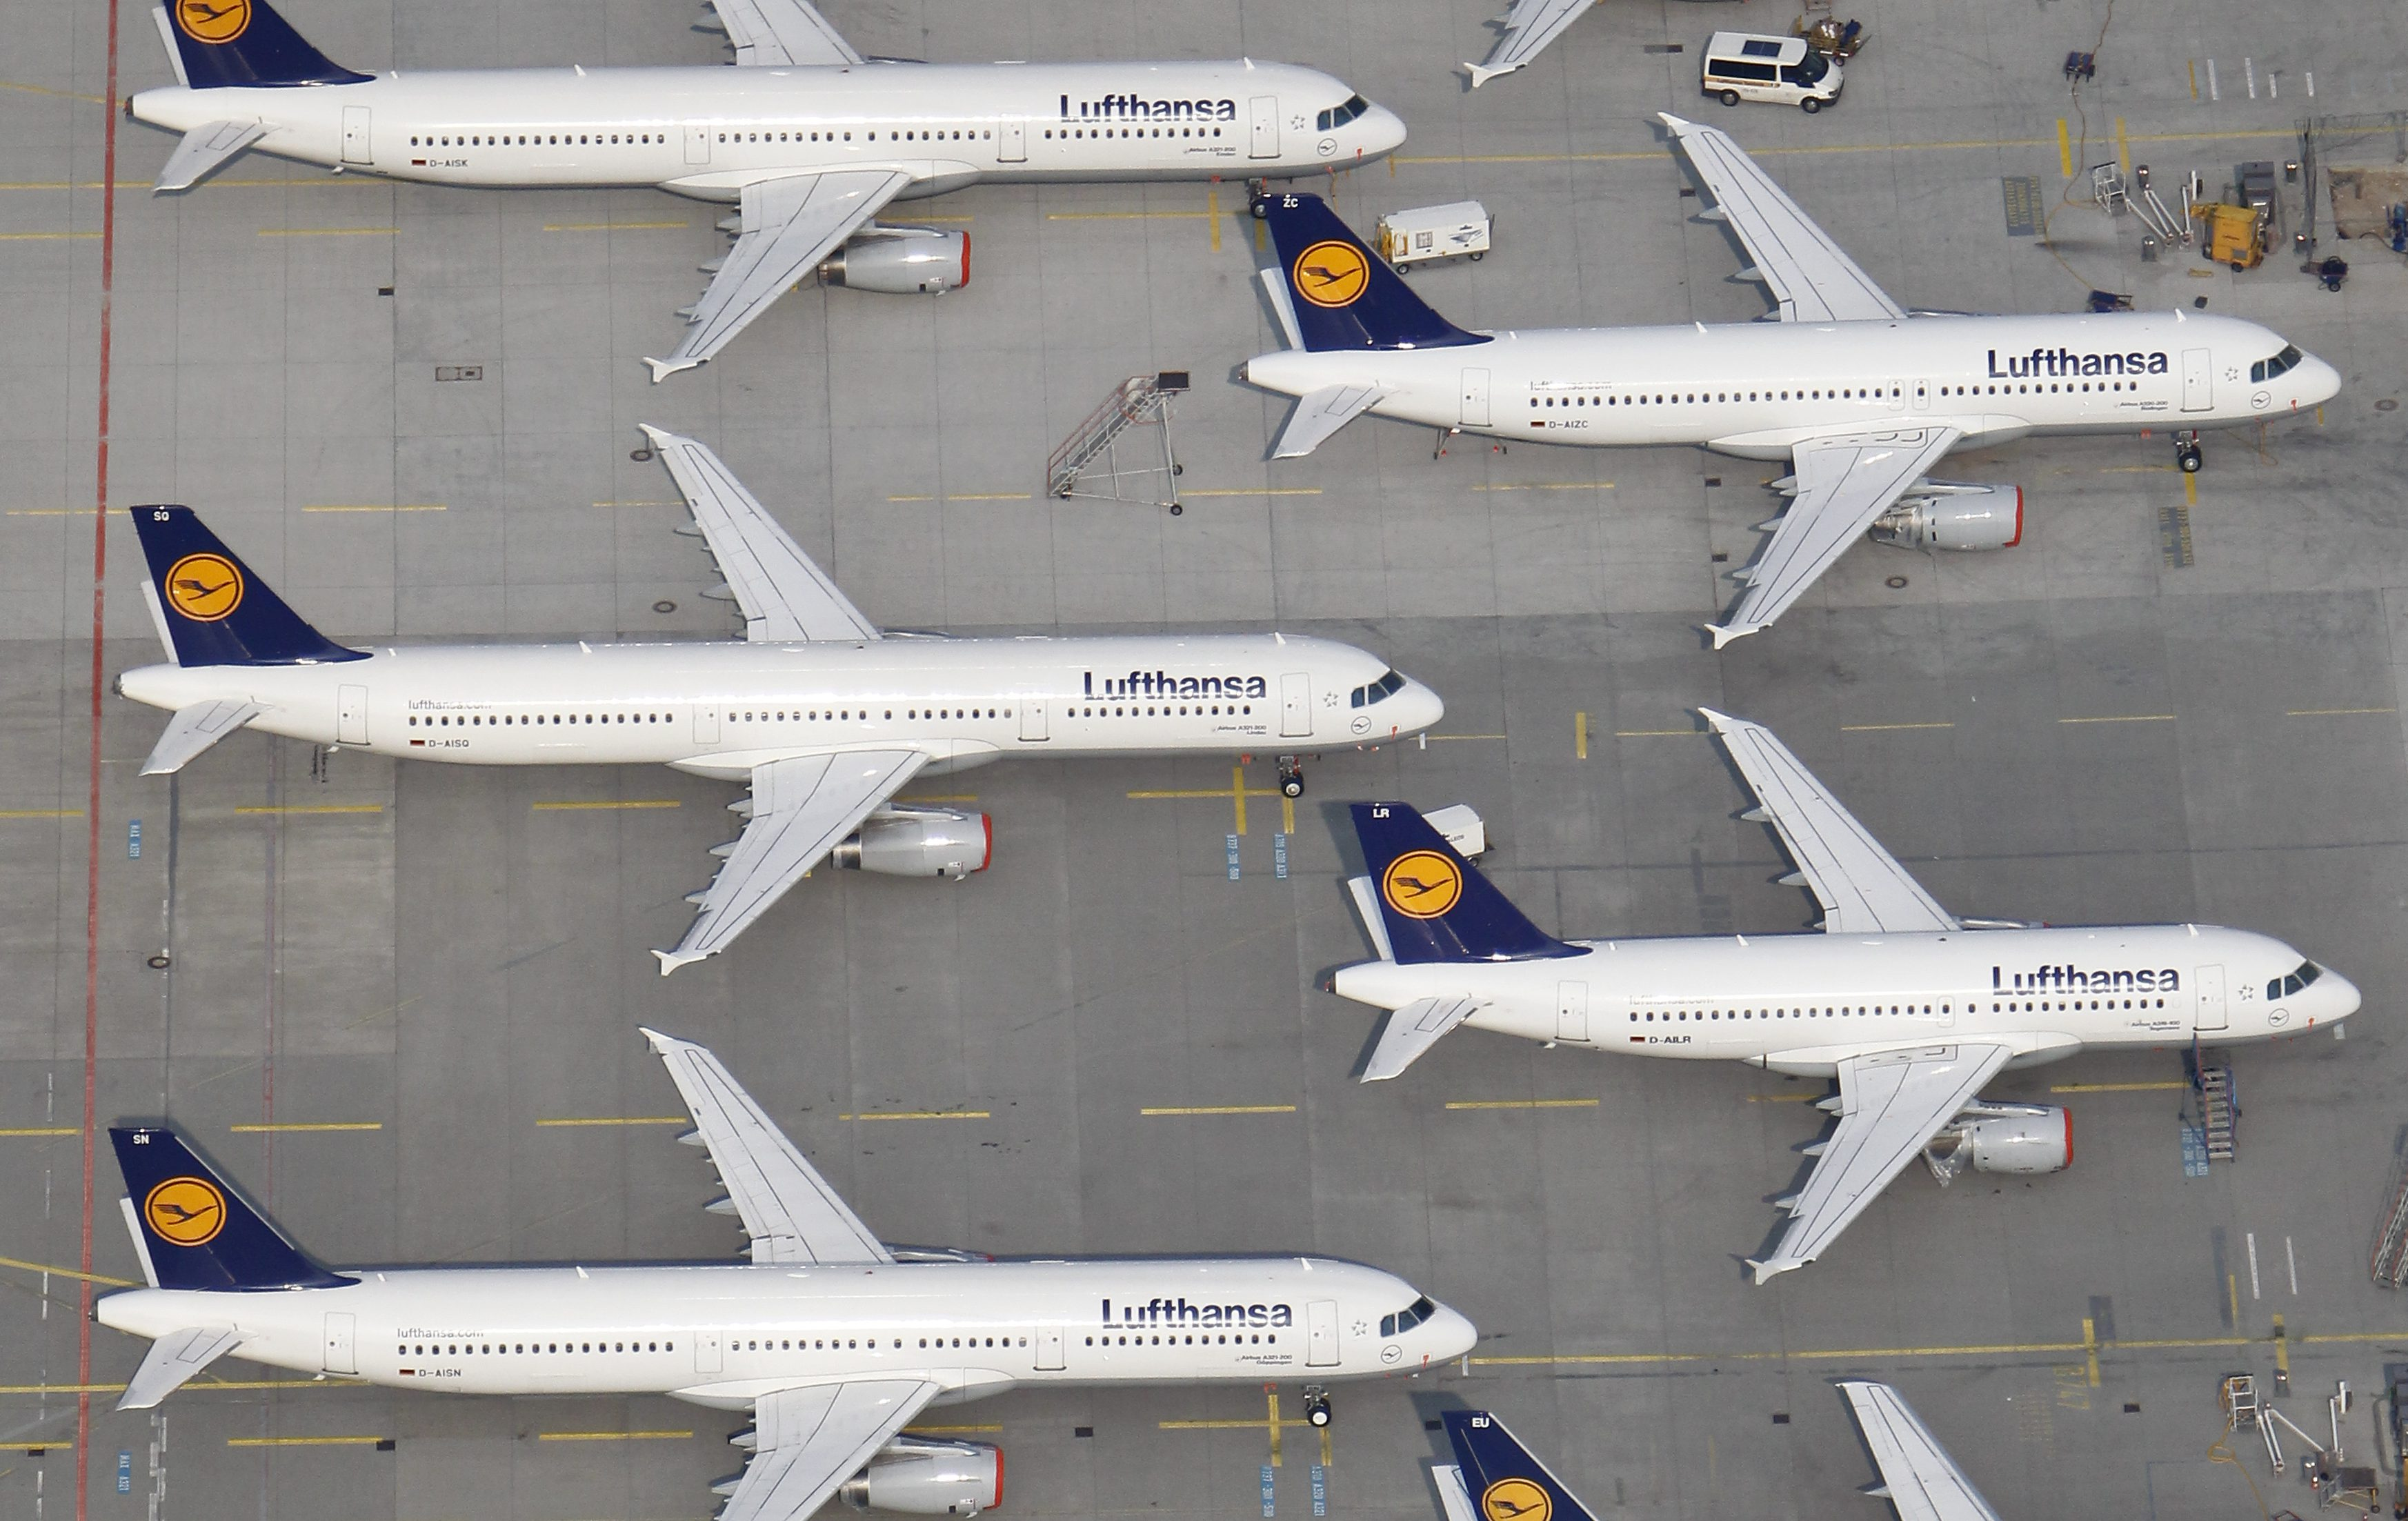 An aerial view shows Lufthansa planes parked on the tarmac of the closed Frankfurt's airport